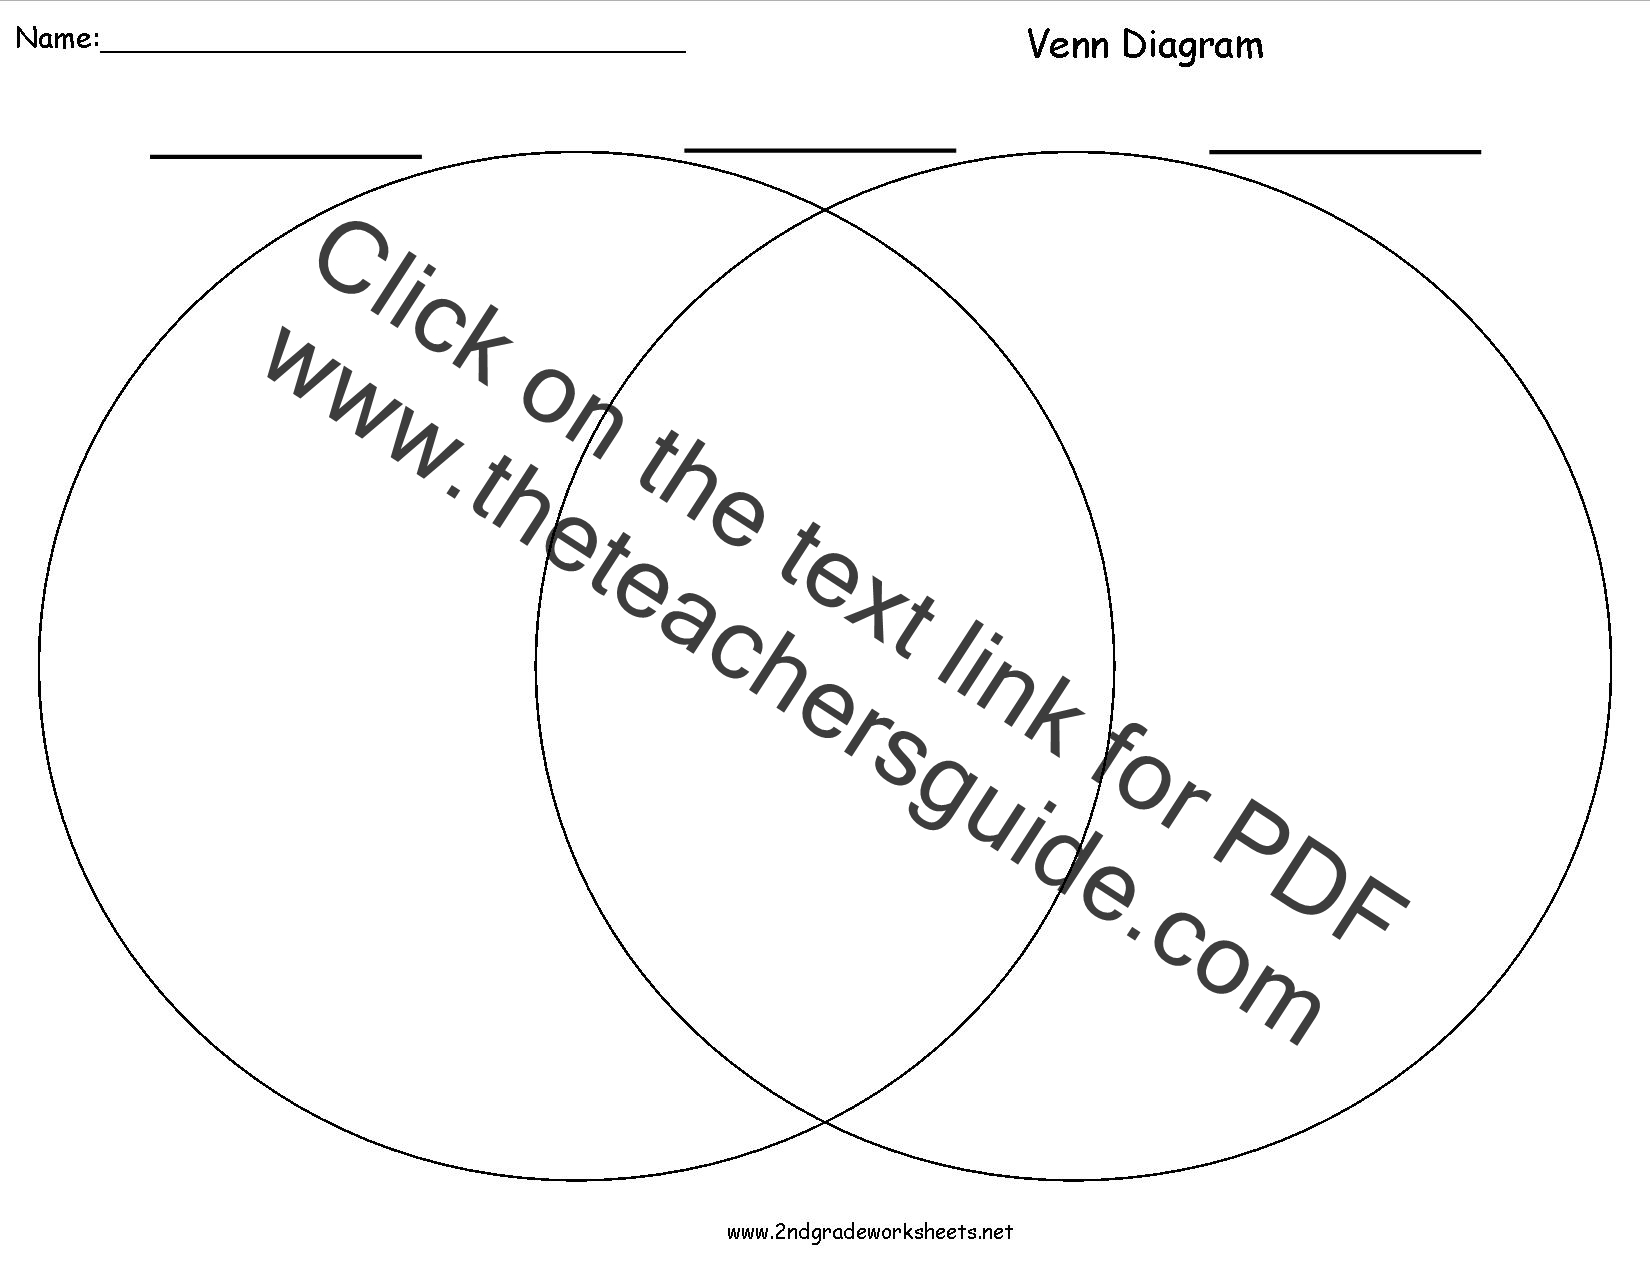 Blank Venn Diagram Worksheet